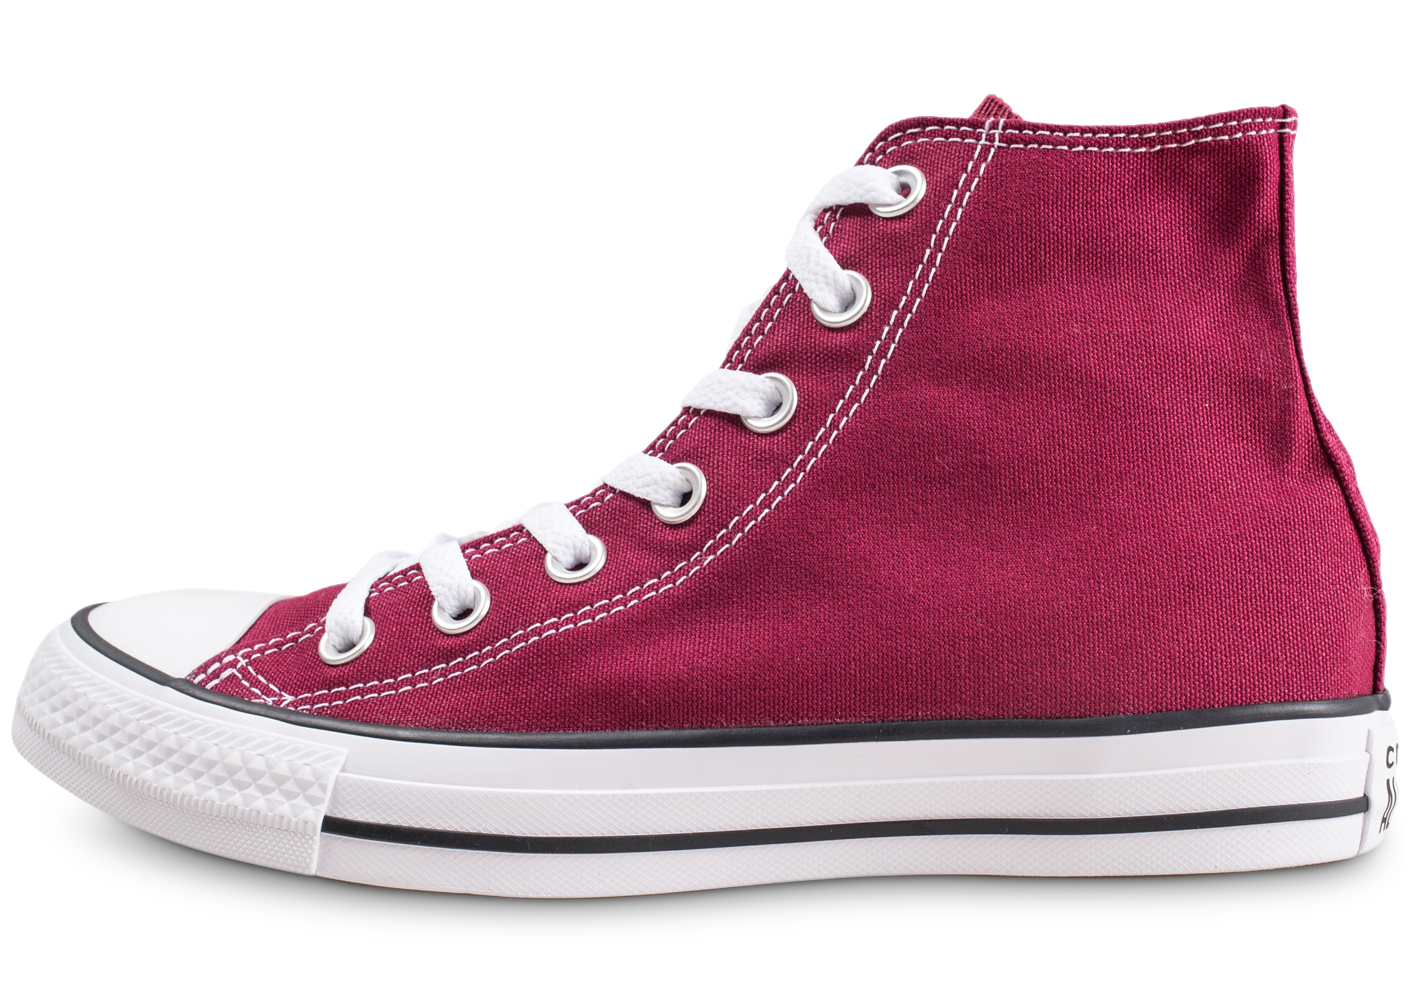 Converse chuck taylor all star hi bordeaux...